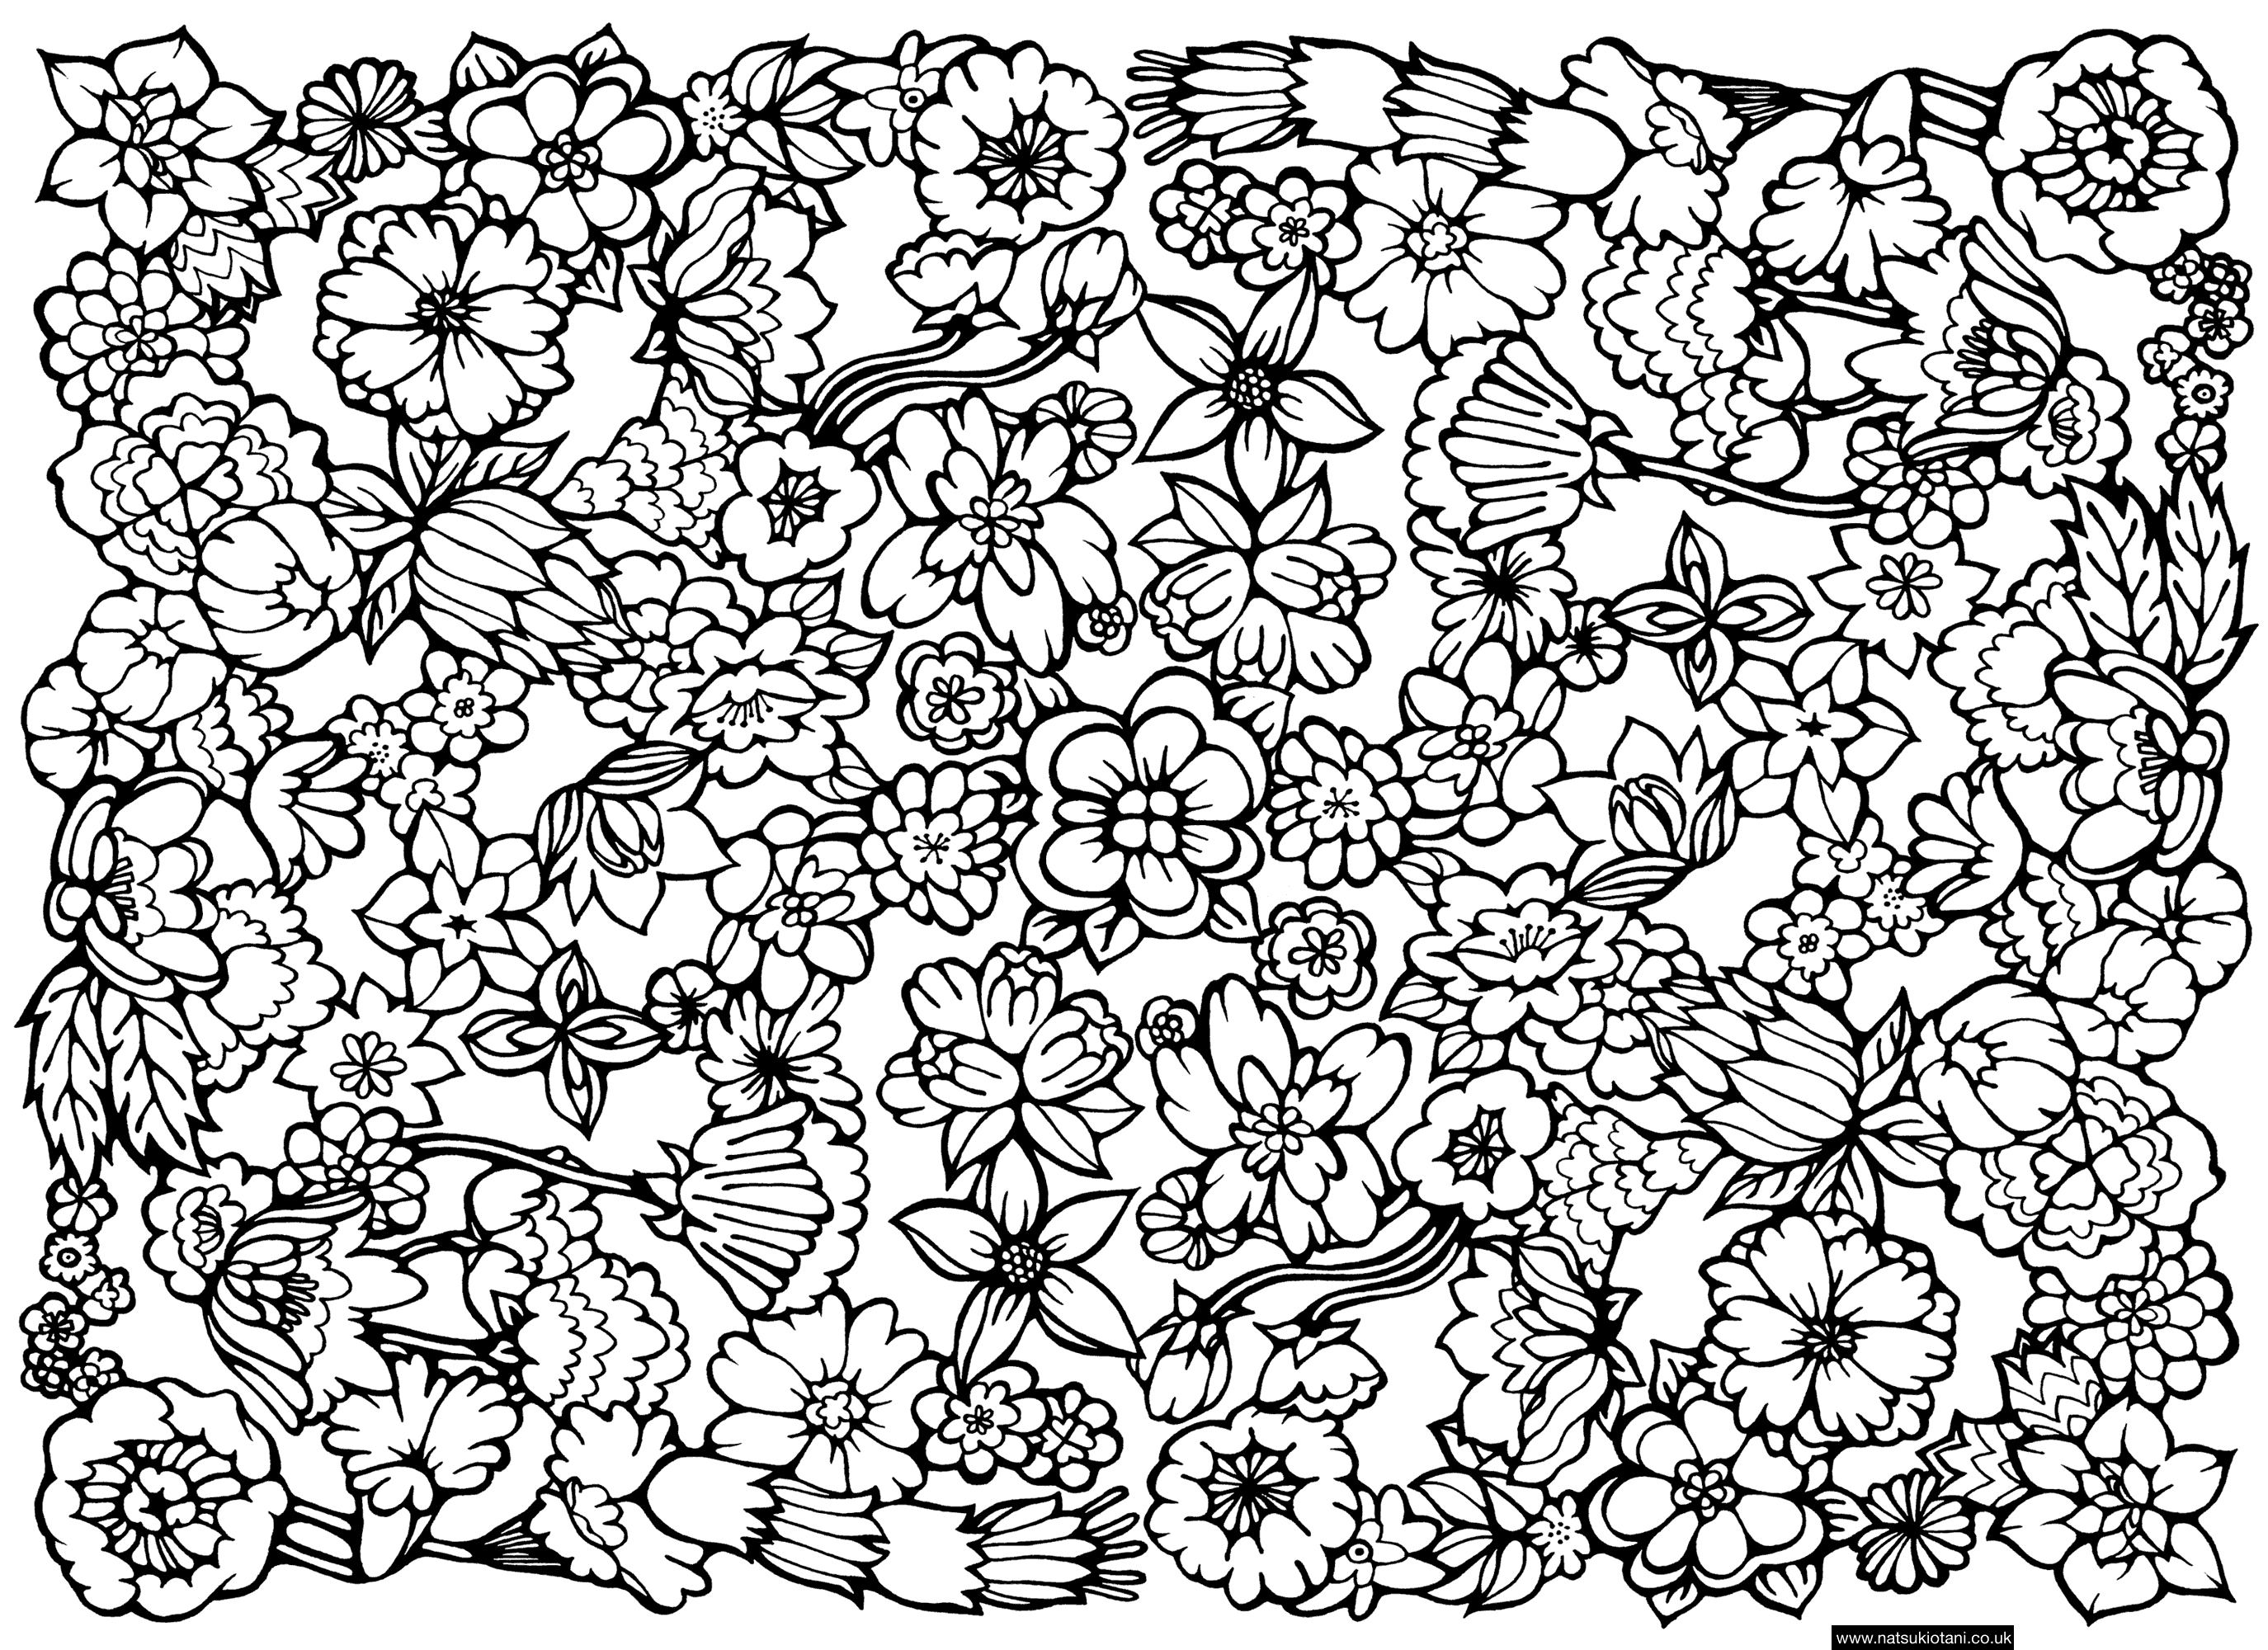 Free Coloring Pages Of Difficult Patterns Art Category